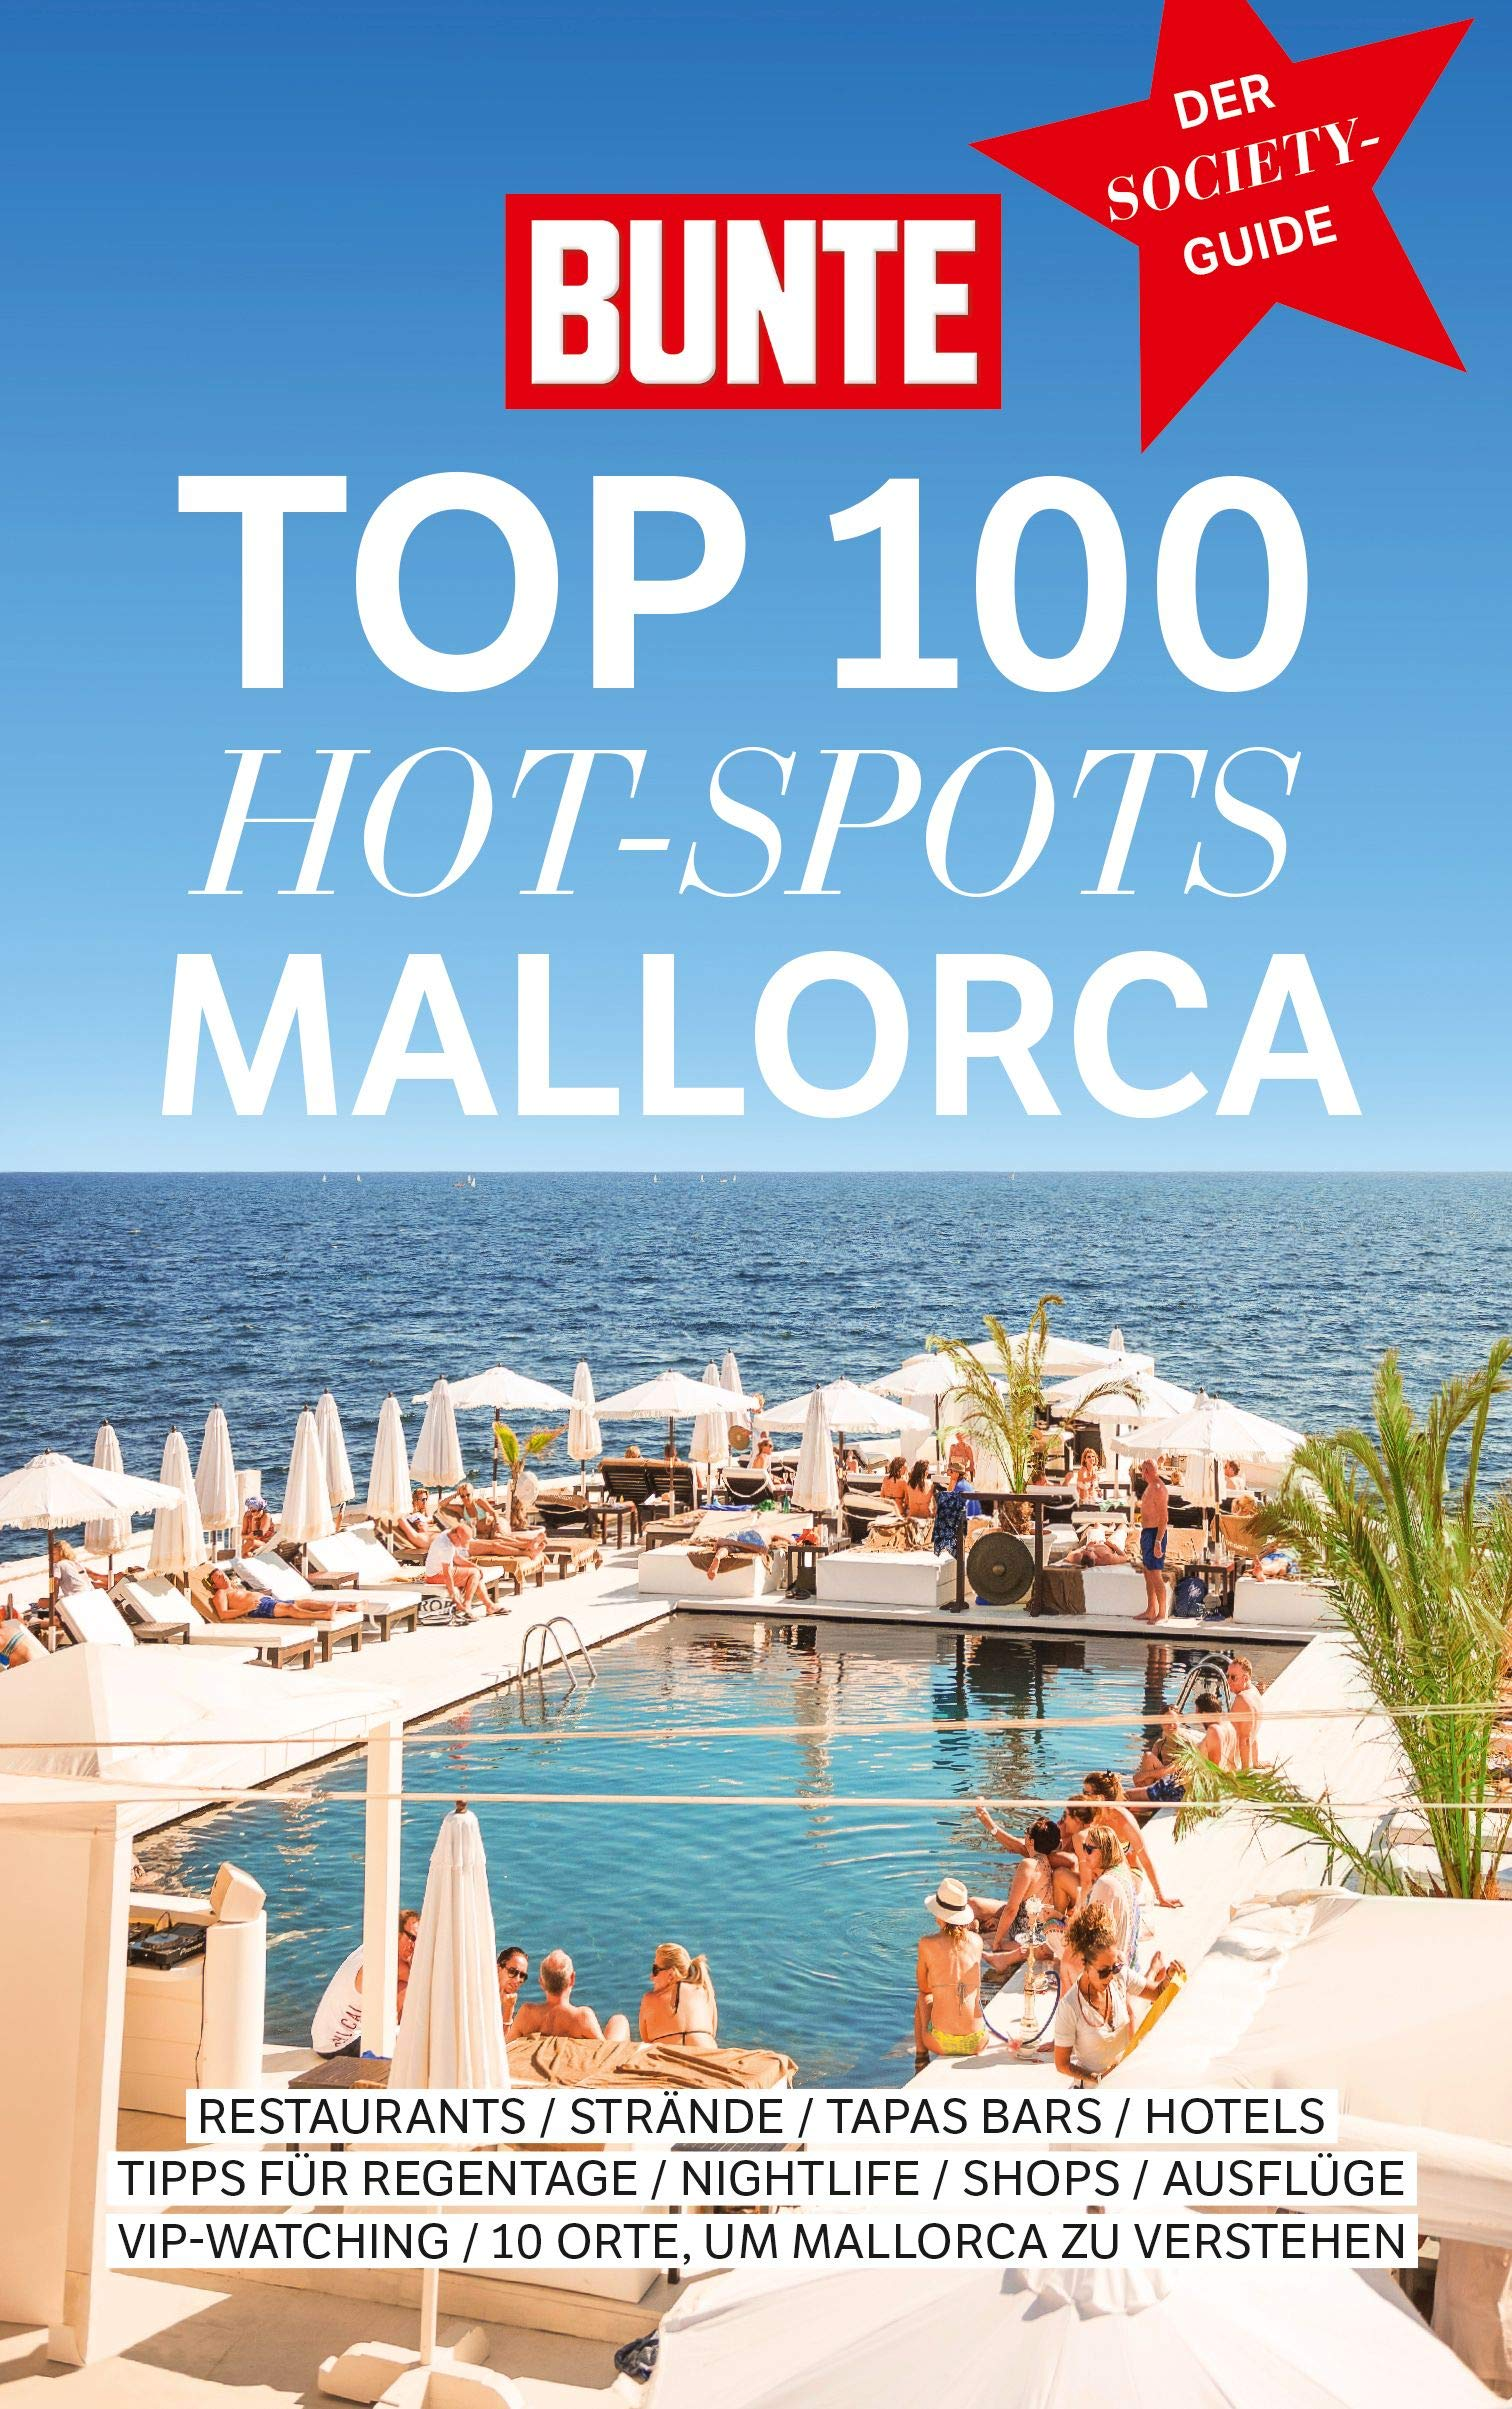 BUNTE Top 100 Hot-Spots Mallorca